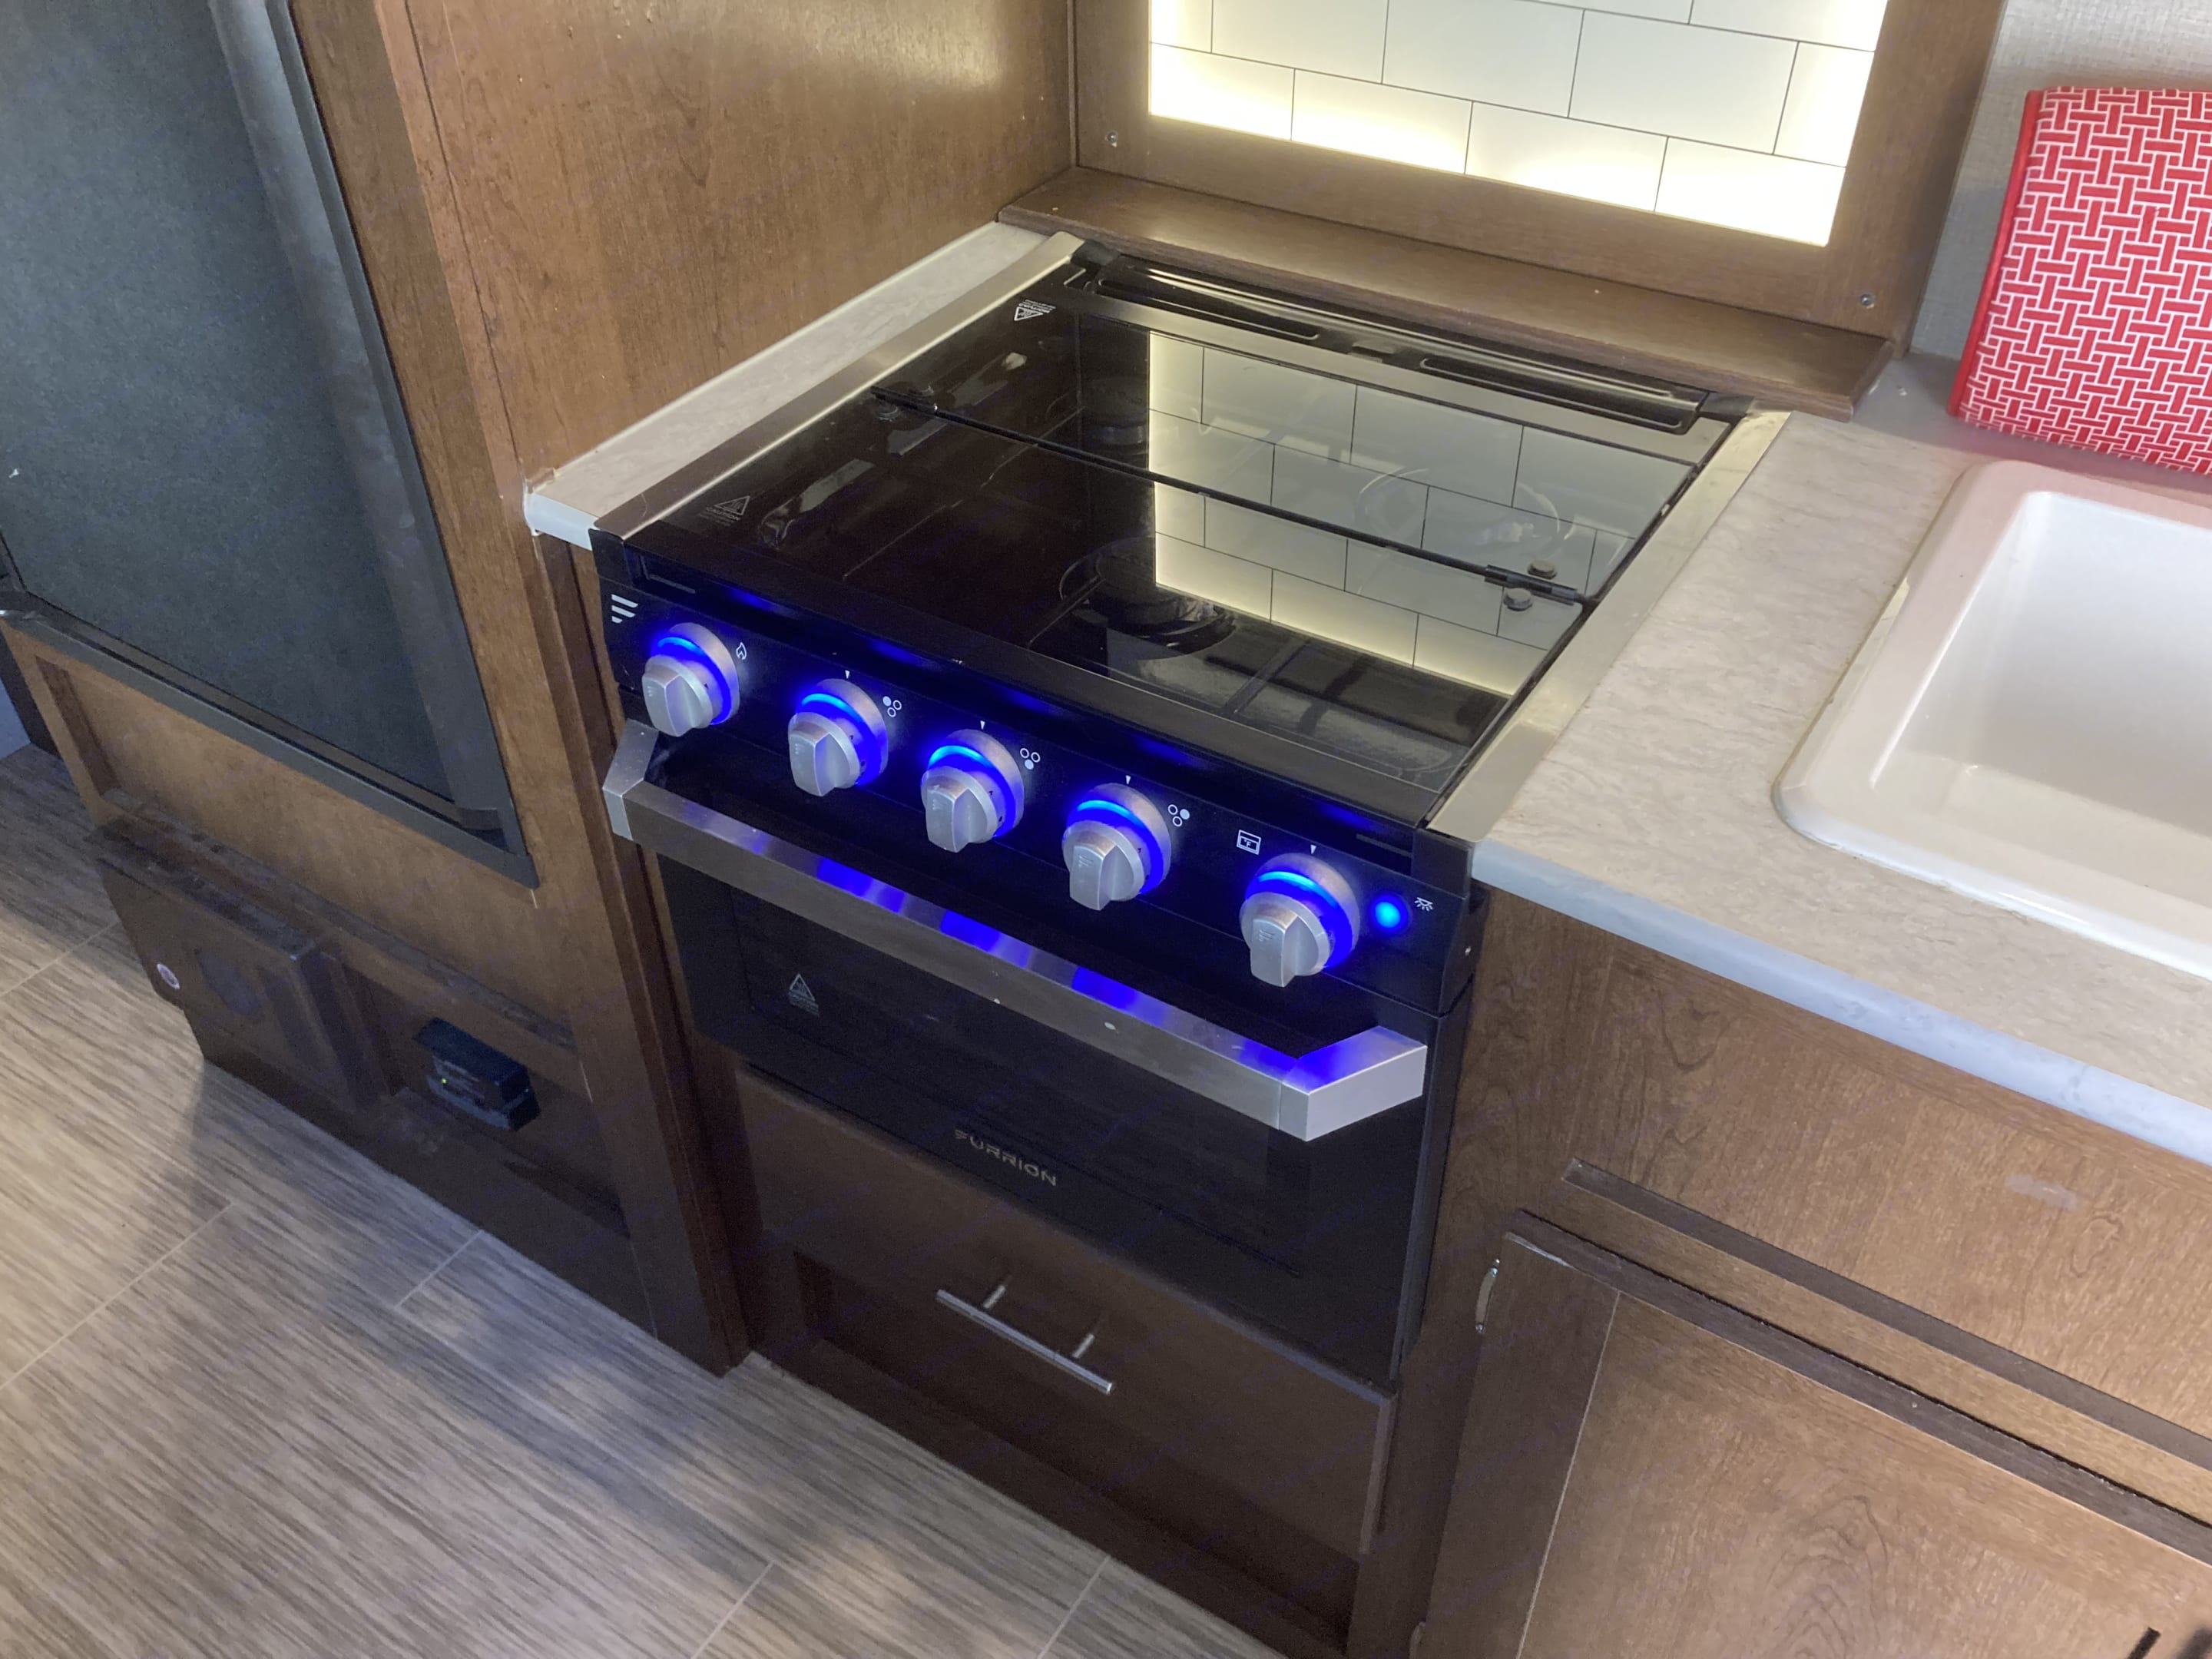 The propane stove has 4 burners and an oven. Above the stove is a microwave oven. . Prime Time Avenger 2019